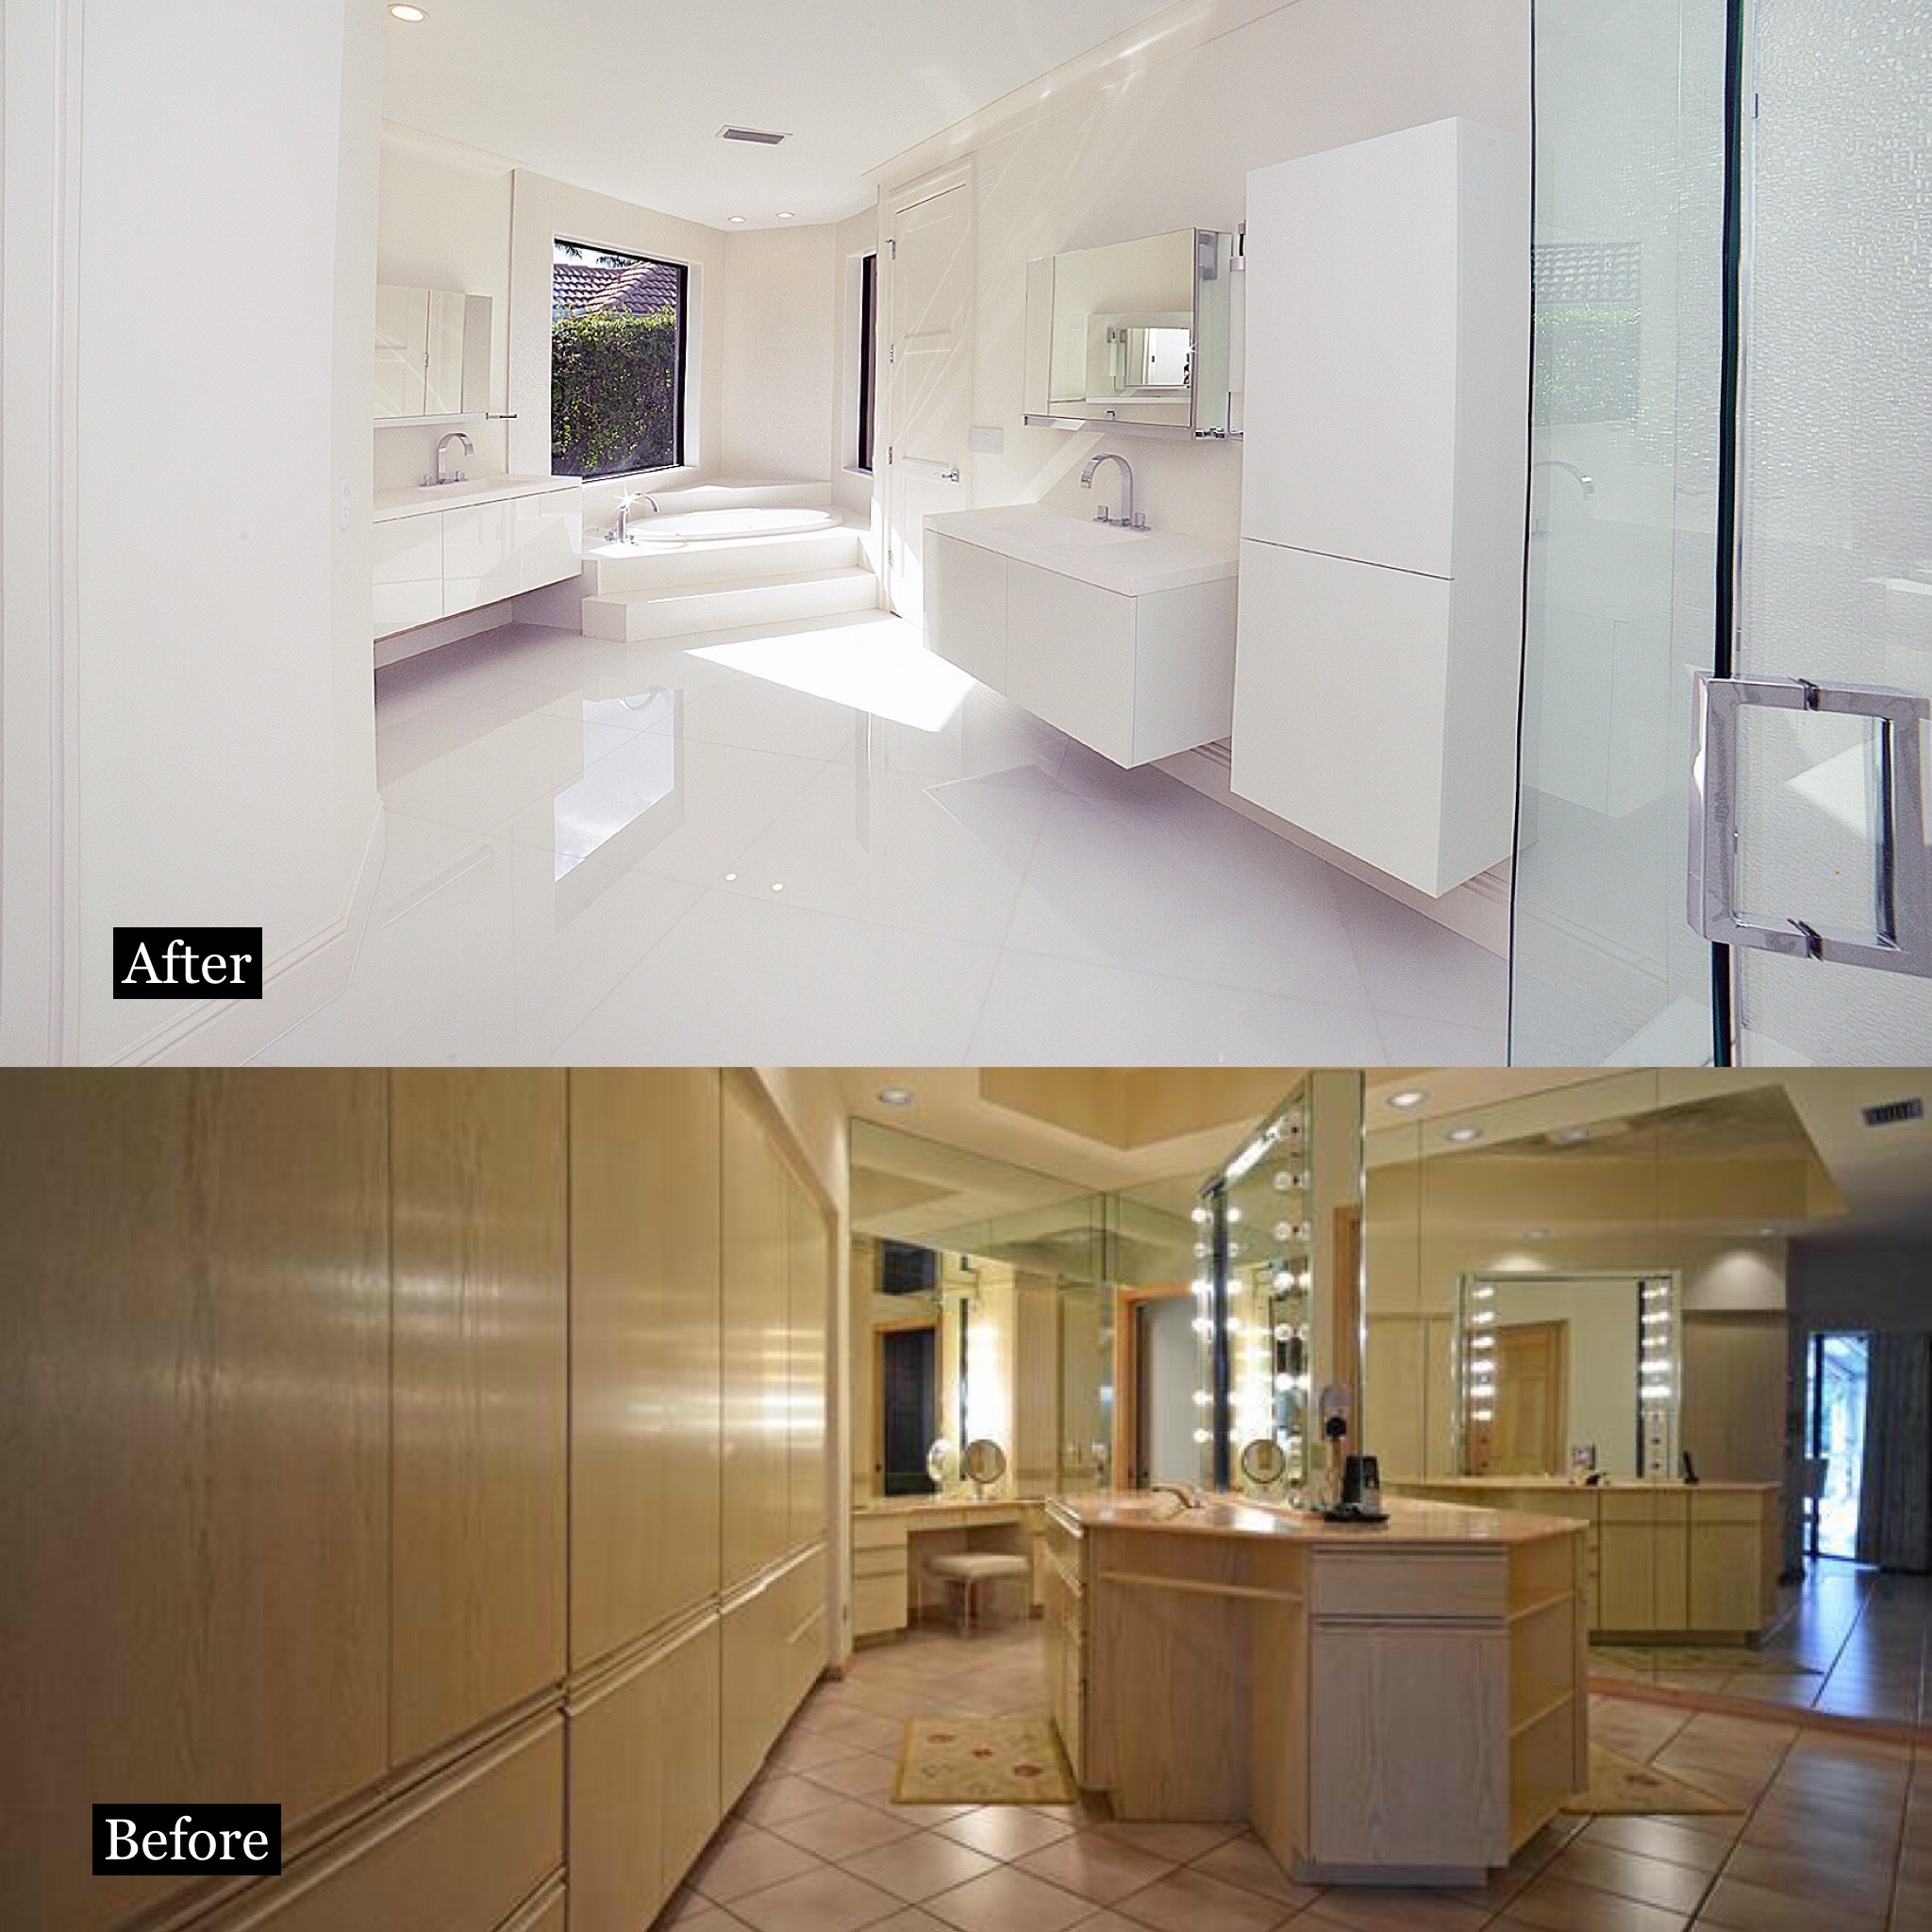 mag real estate & development transformation before after construction general contractor builder renovation south florida boca raton new custom luxury home for sale interior design st. andrews country club 7026 ayrshire lane 5.jpg